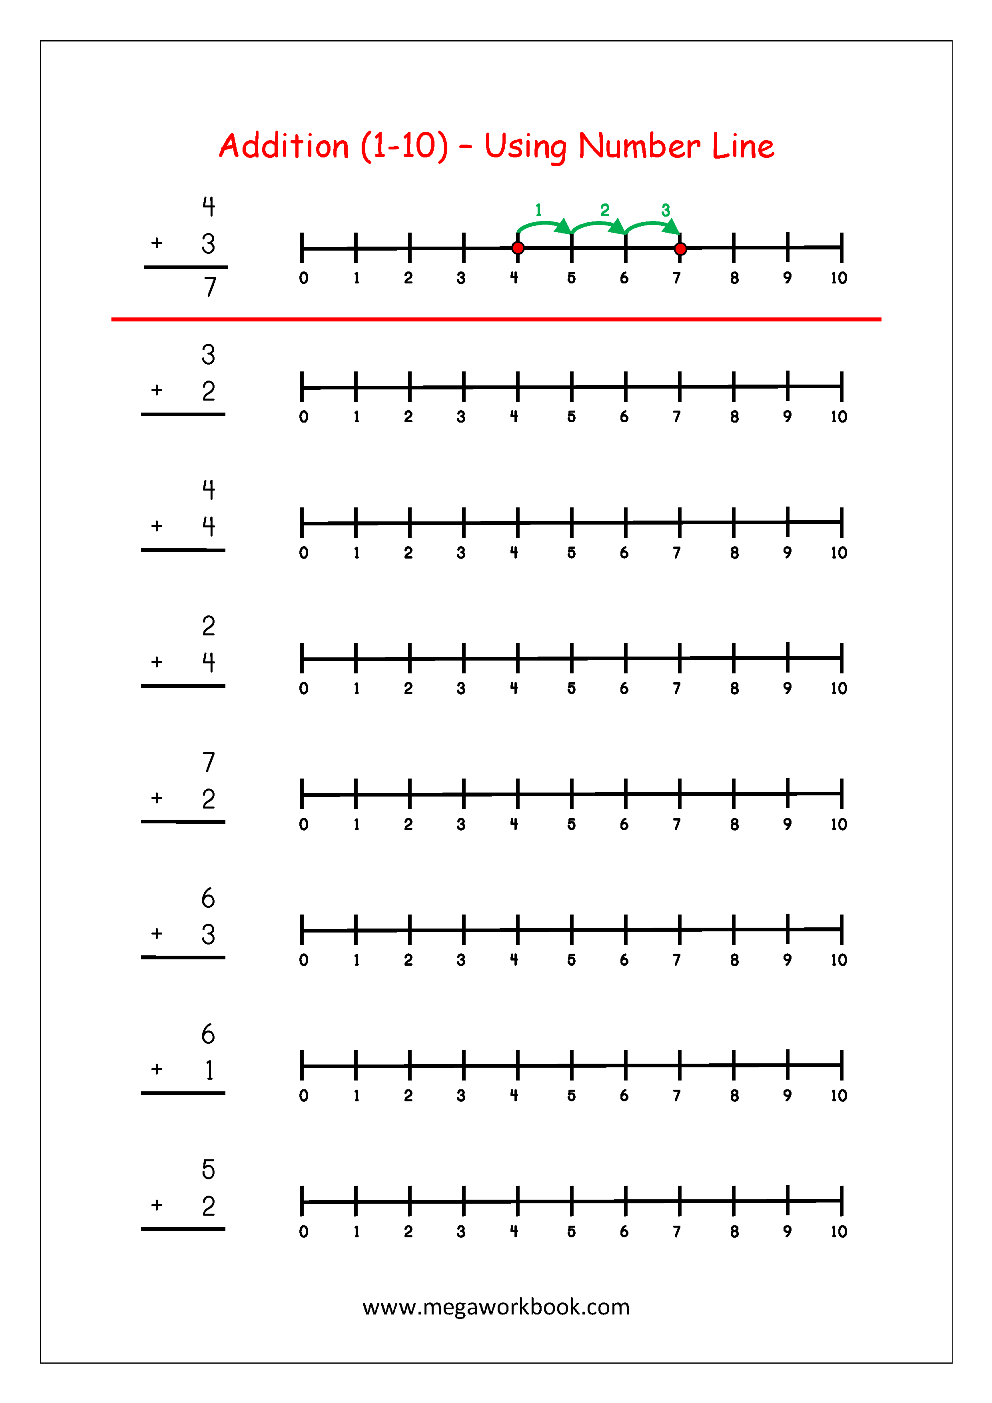 hight resolution of Free Printable Number Addition Worksheets (1-10) For Kindergarten And Grade  1- Addition On Number Line - Addition With Pictures/Objects - MegaWorkbook